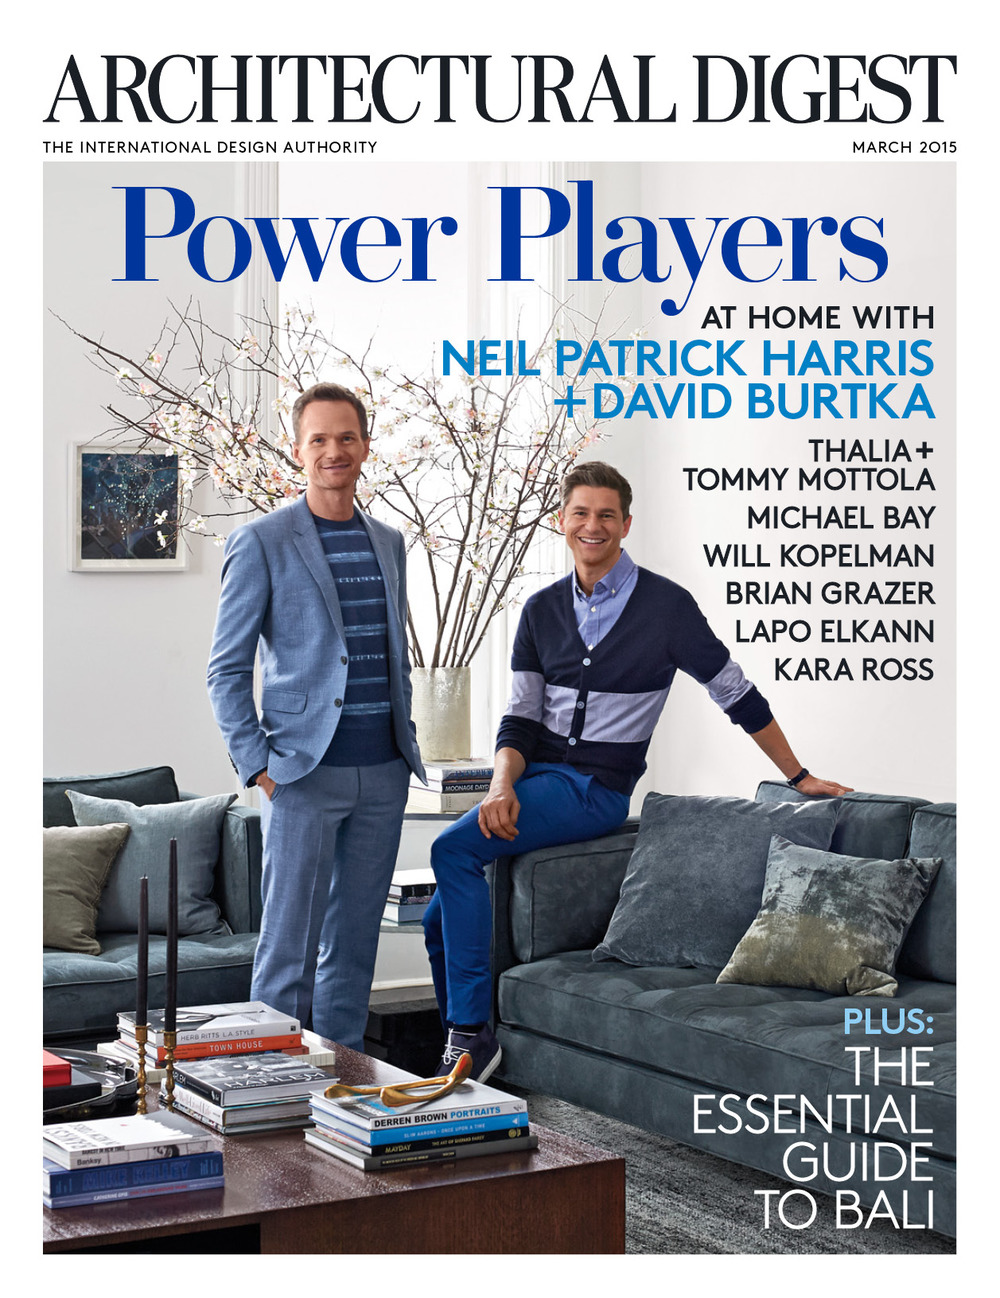 NPH+AD+March+2015+cover[1].jpg